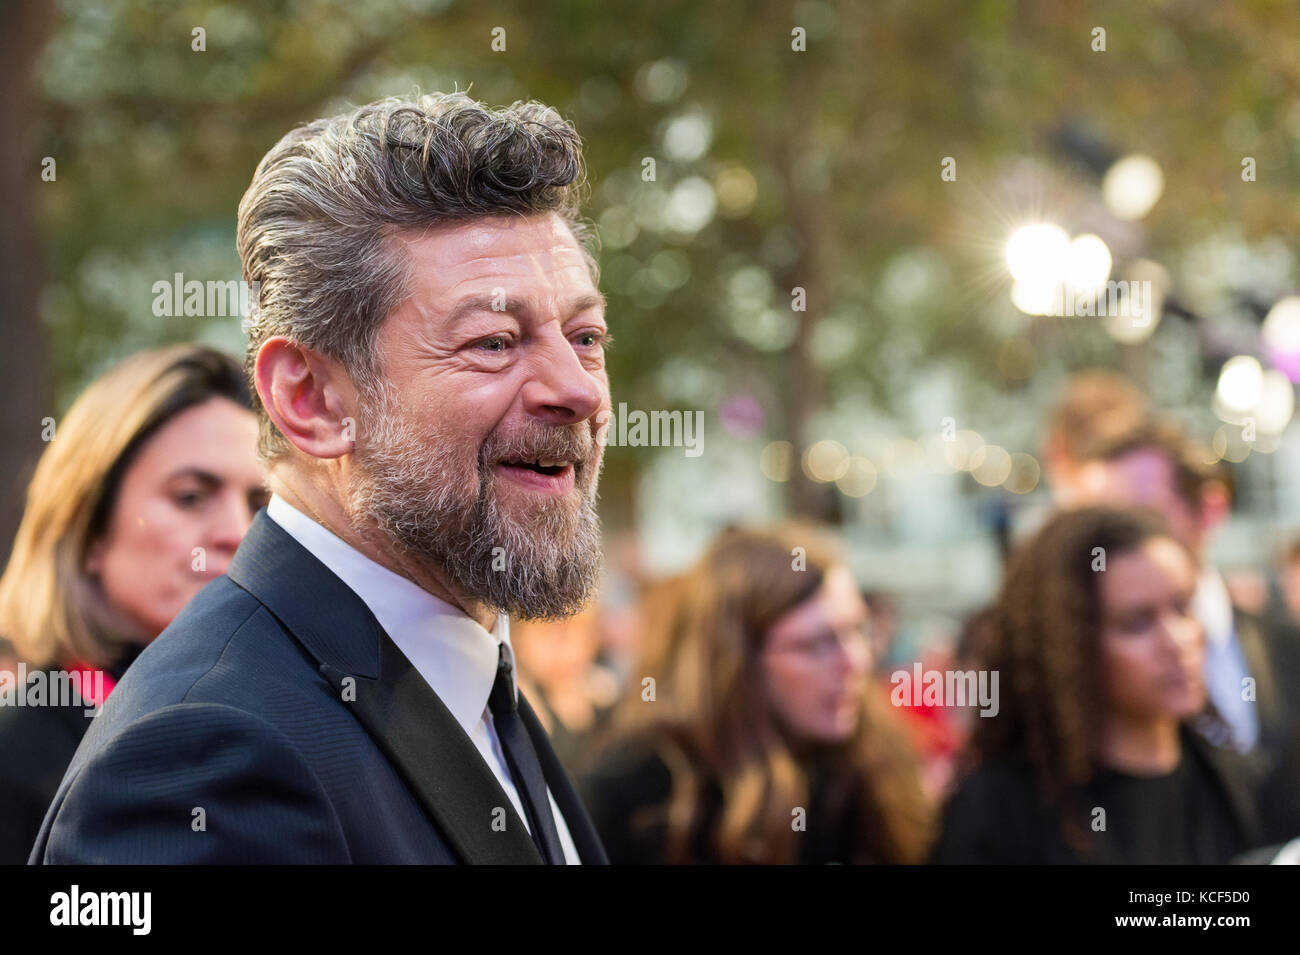 London, UK. 4th October 2017. Andy Serkis attends the UK film premiere of Breathe at Odeon Leicester Square during - Stock Image